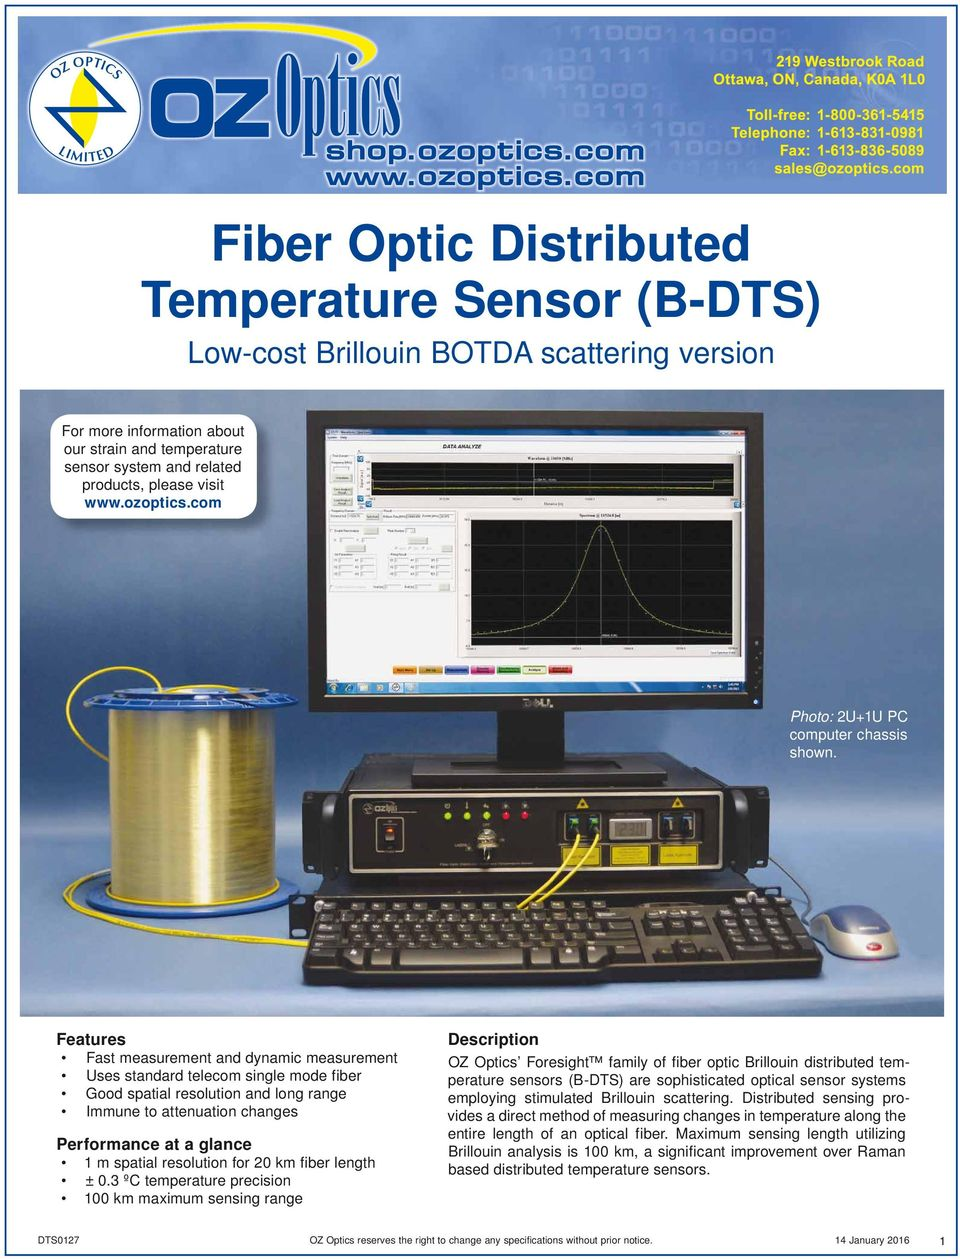 Features Description Fast measurement and dynamic measurement Uses standard telecom single mode fiber Good spatial resolution and long range Immune to attenuation changes Performance at a glance